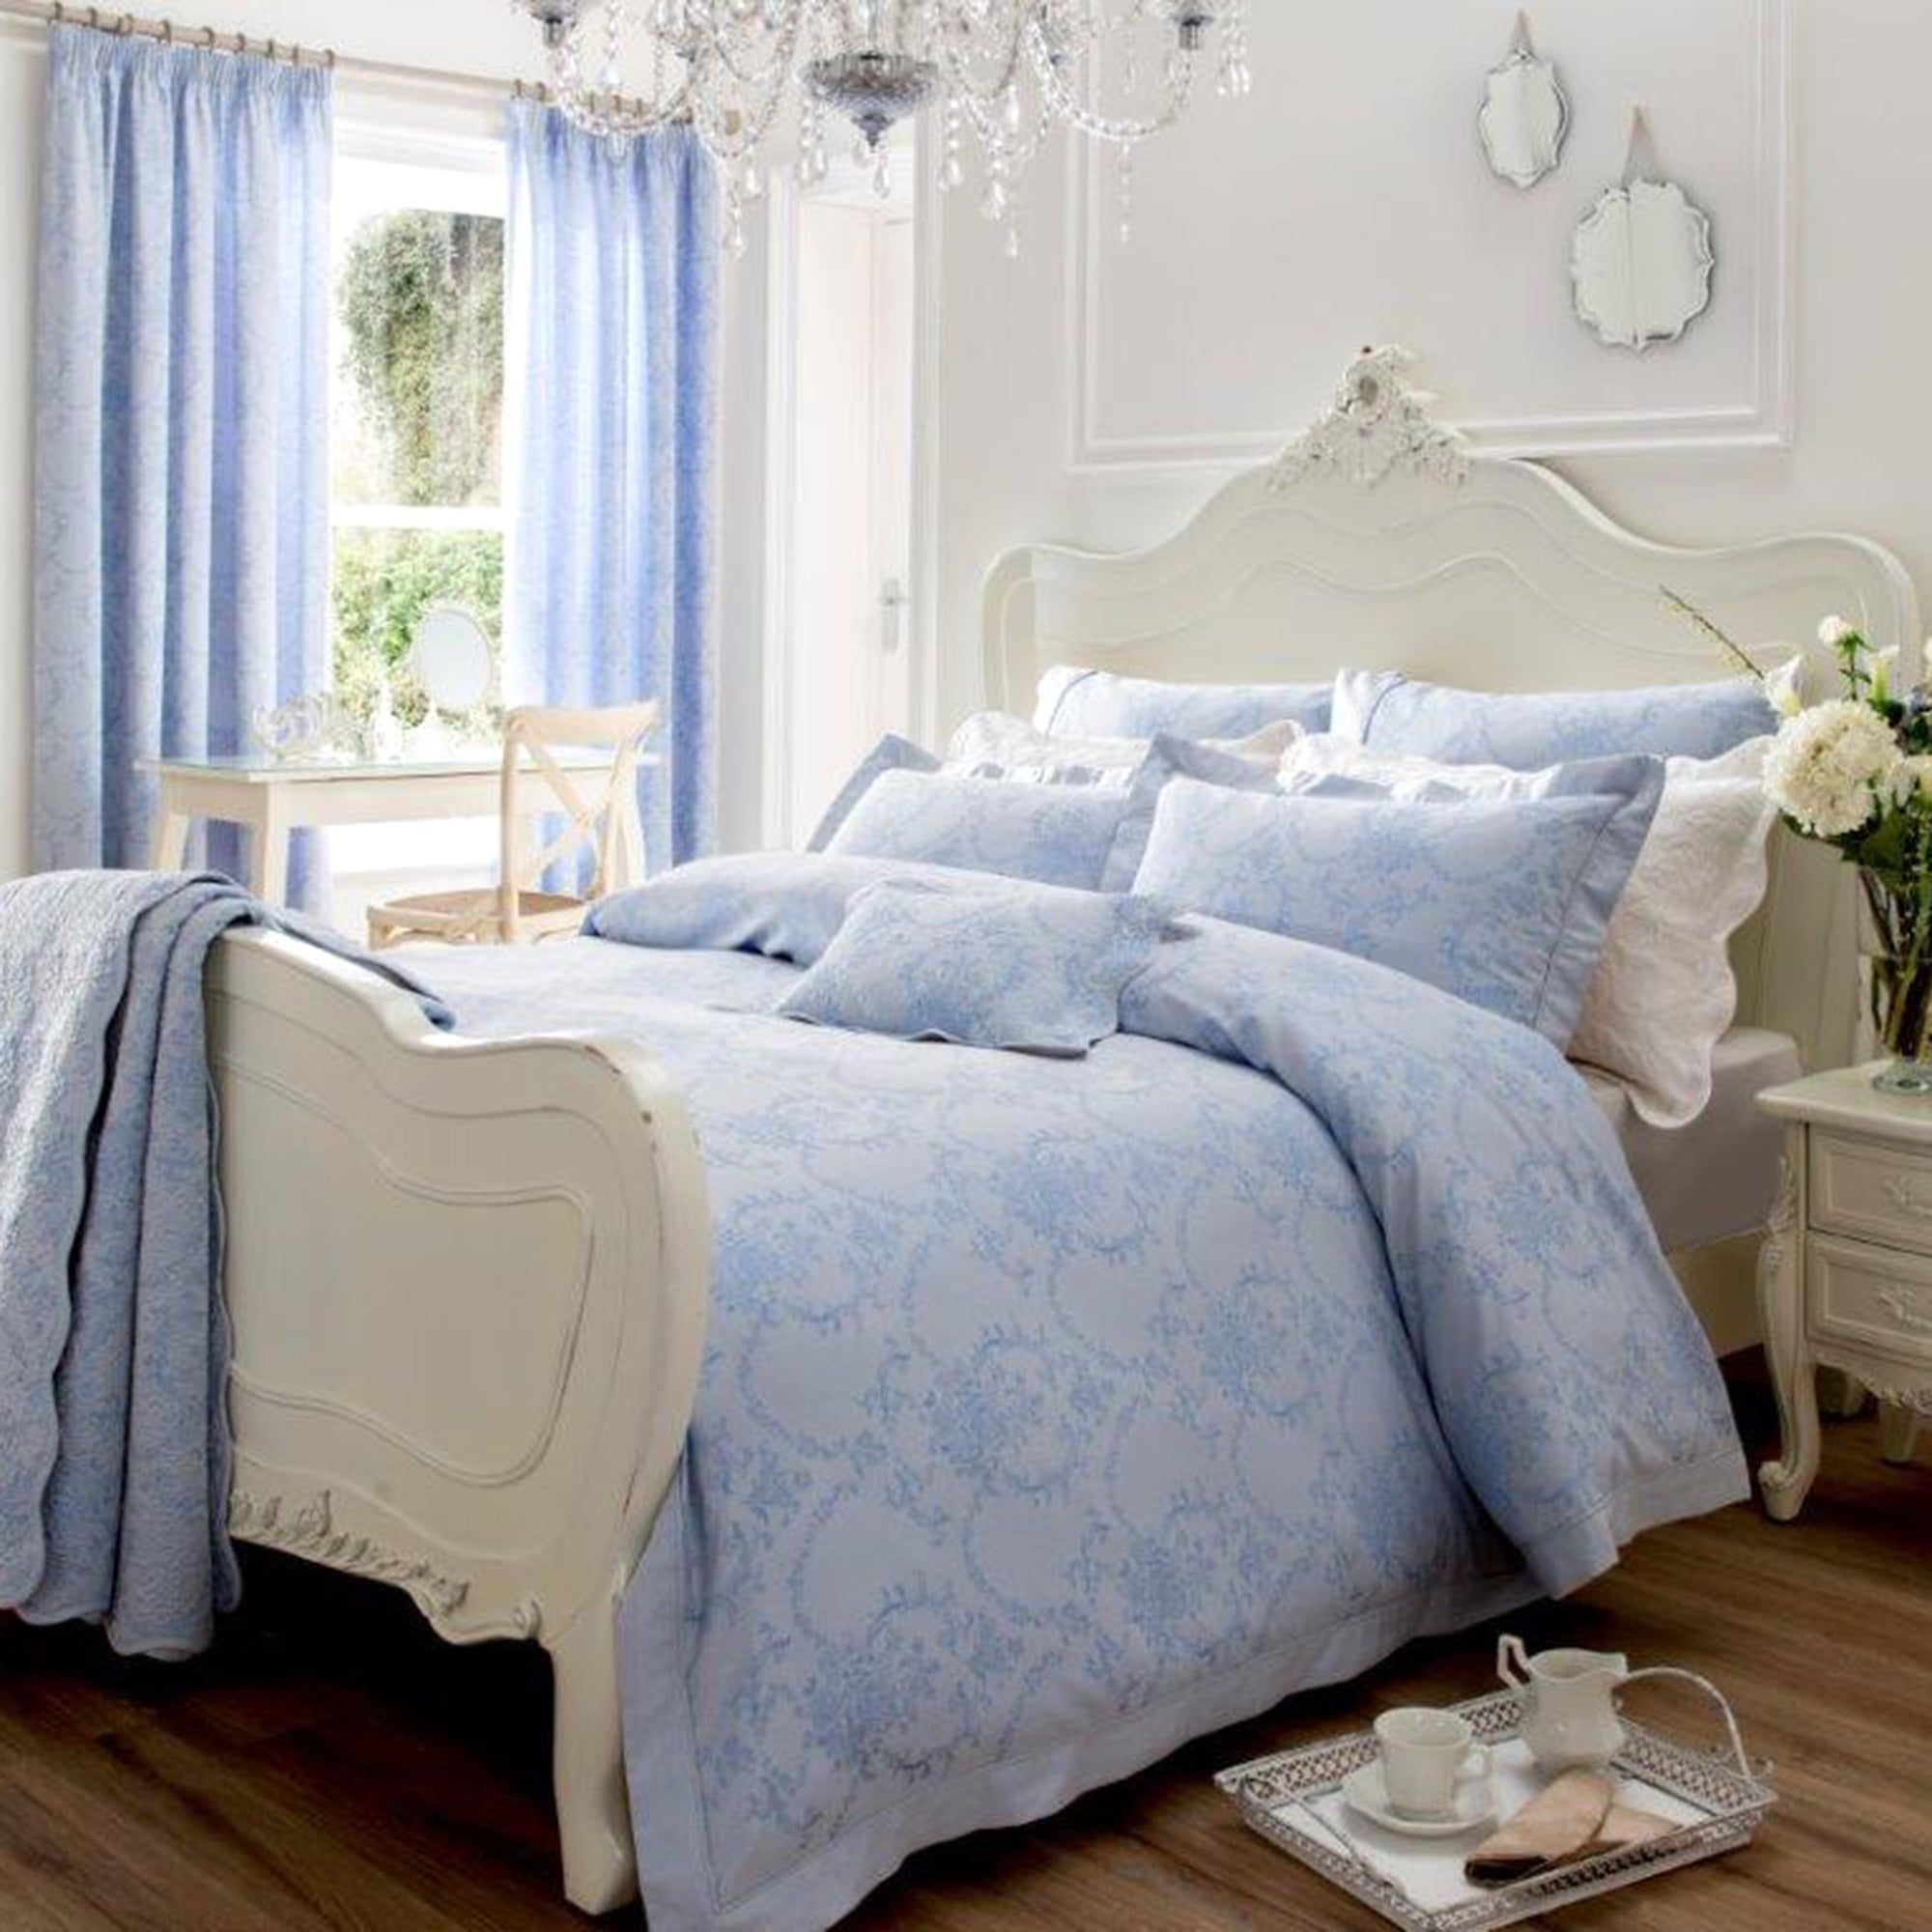 Dorma Blue Chateau Collection Duvet Cover Set